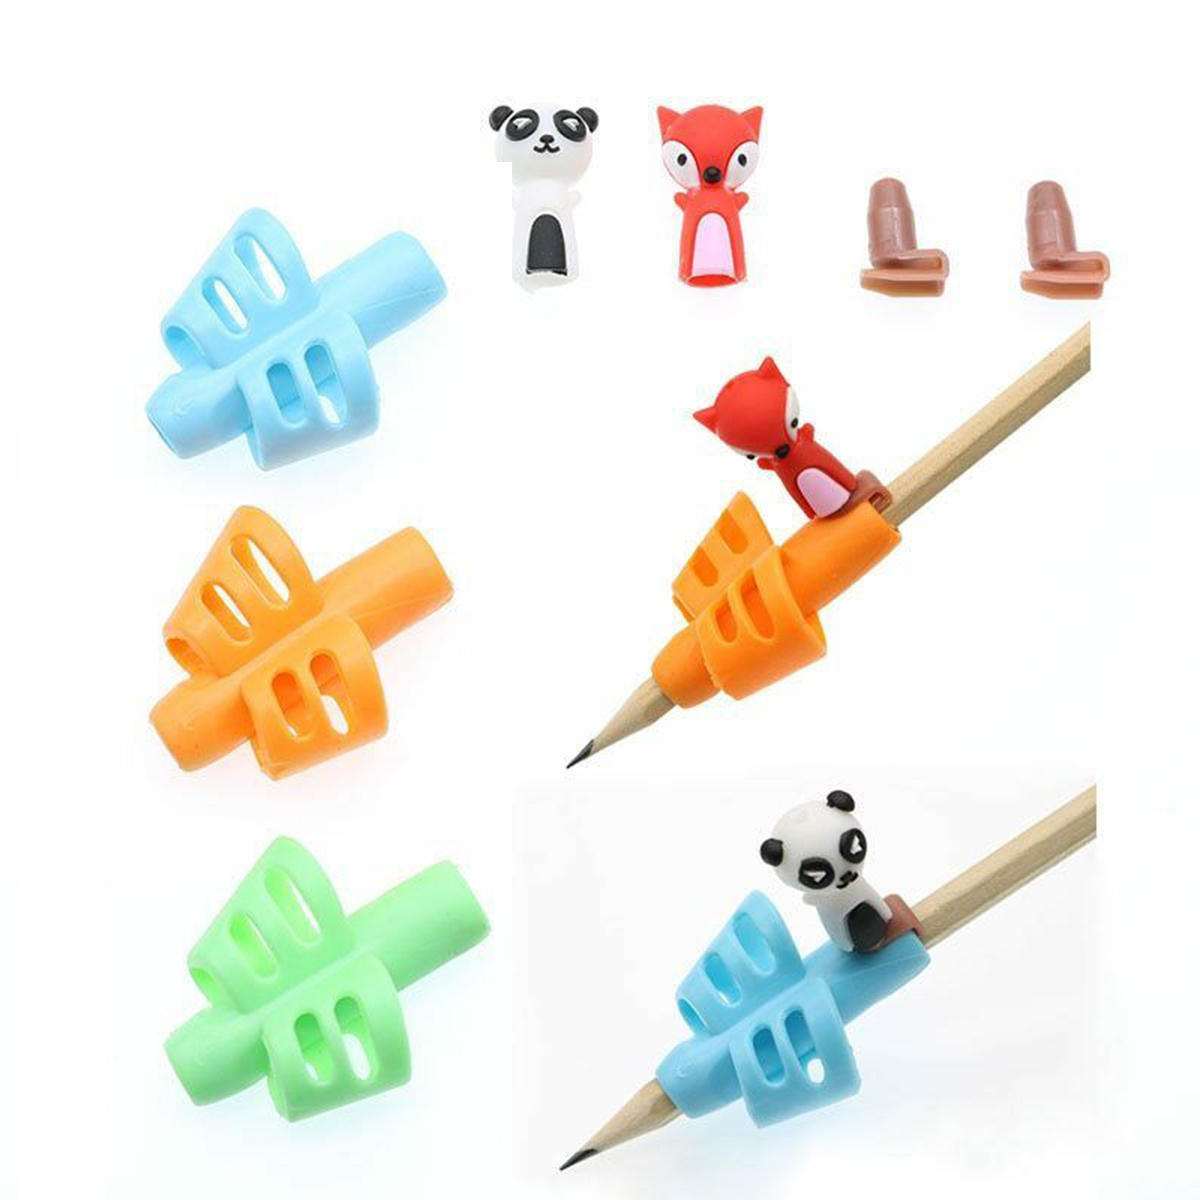 Two-Finger Grip Silicone Baby 3pcs Learning Writing Tool Writing Pencil